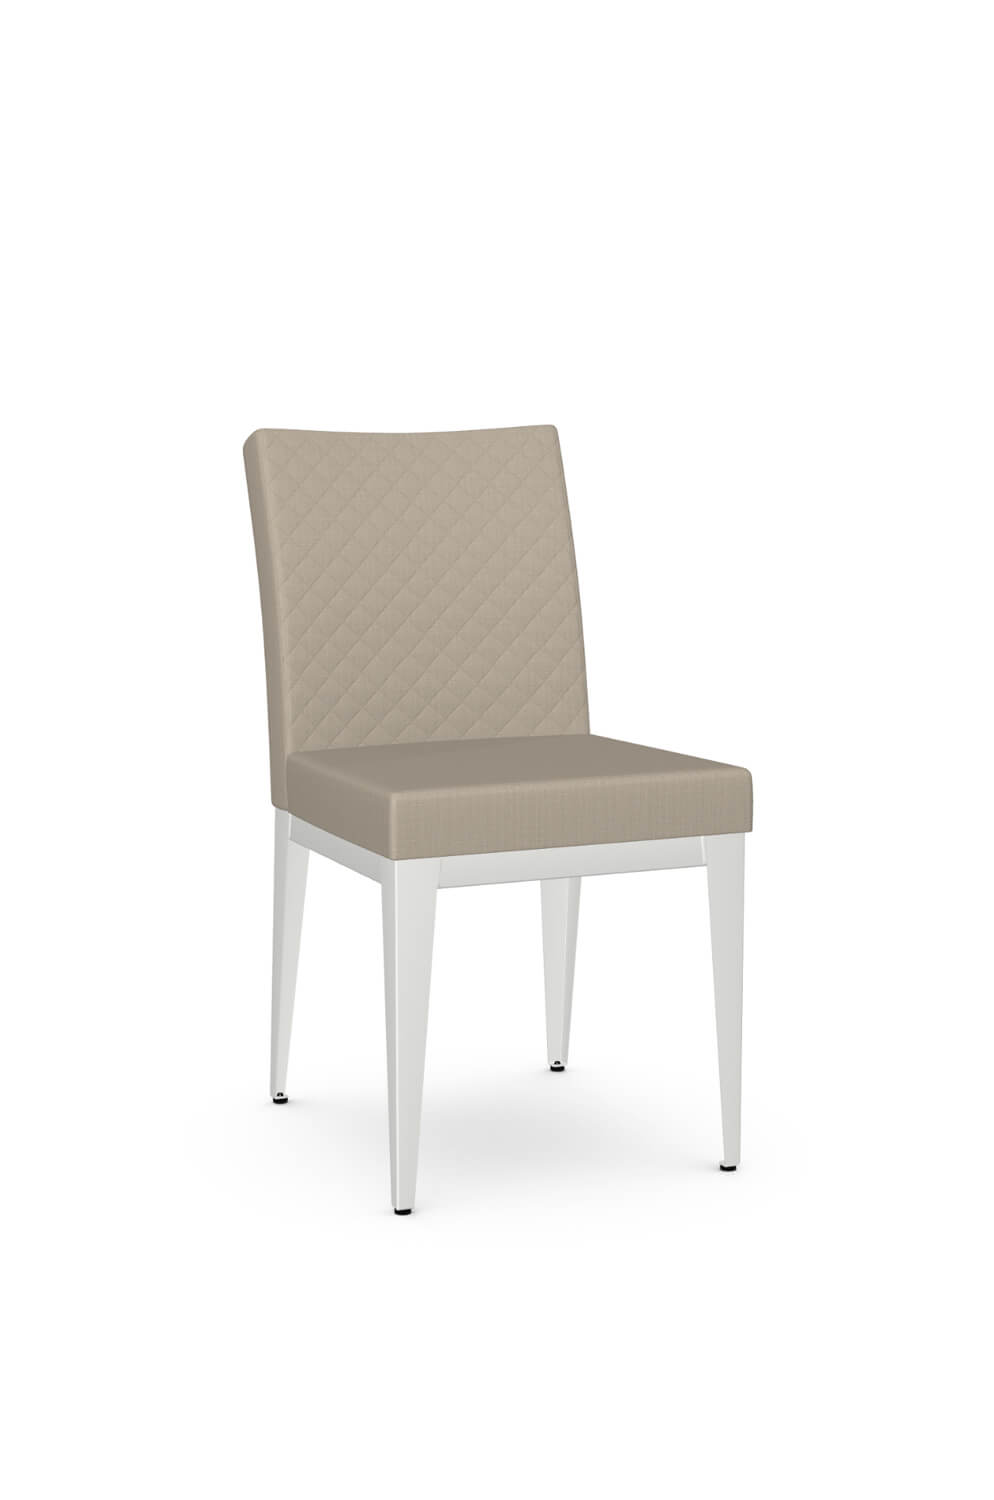 Amisco's Pedro Upholstered Modern Dining Chair